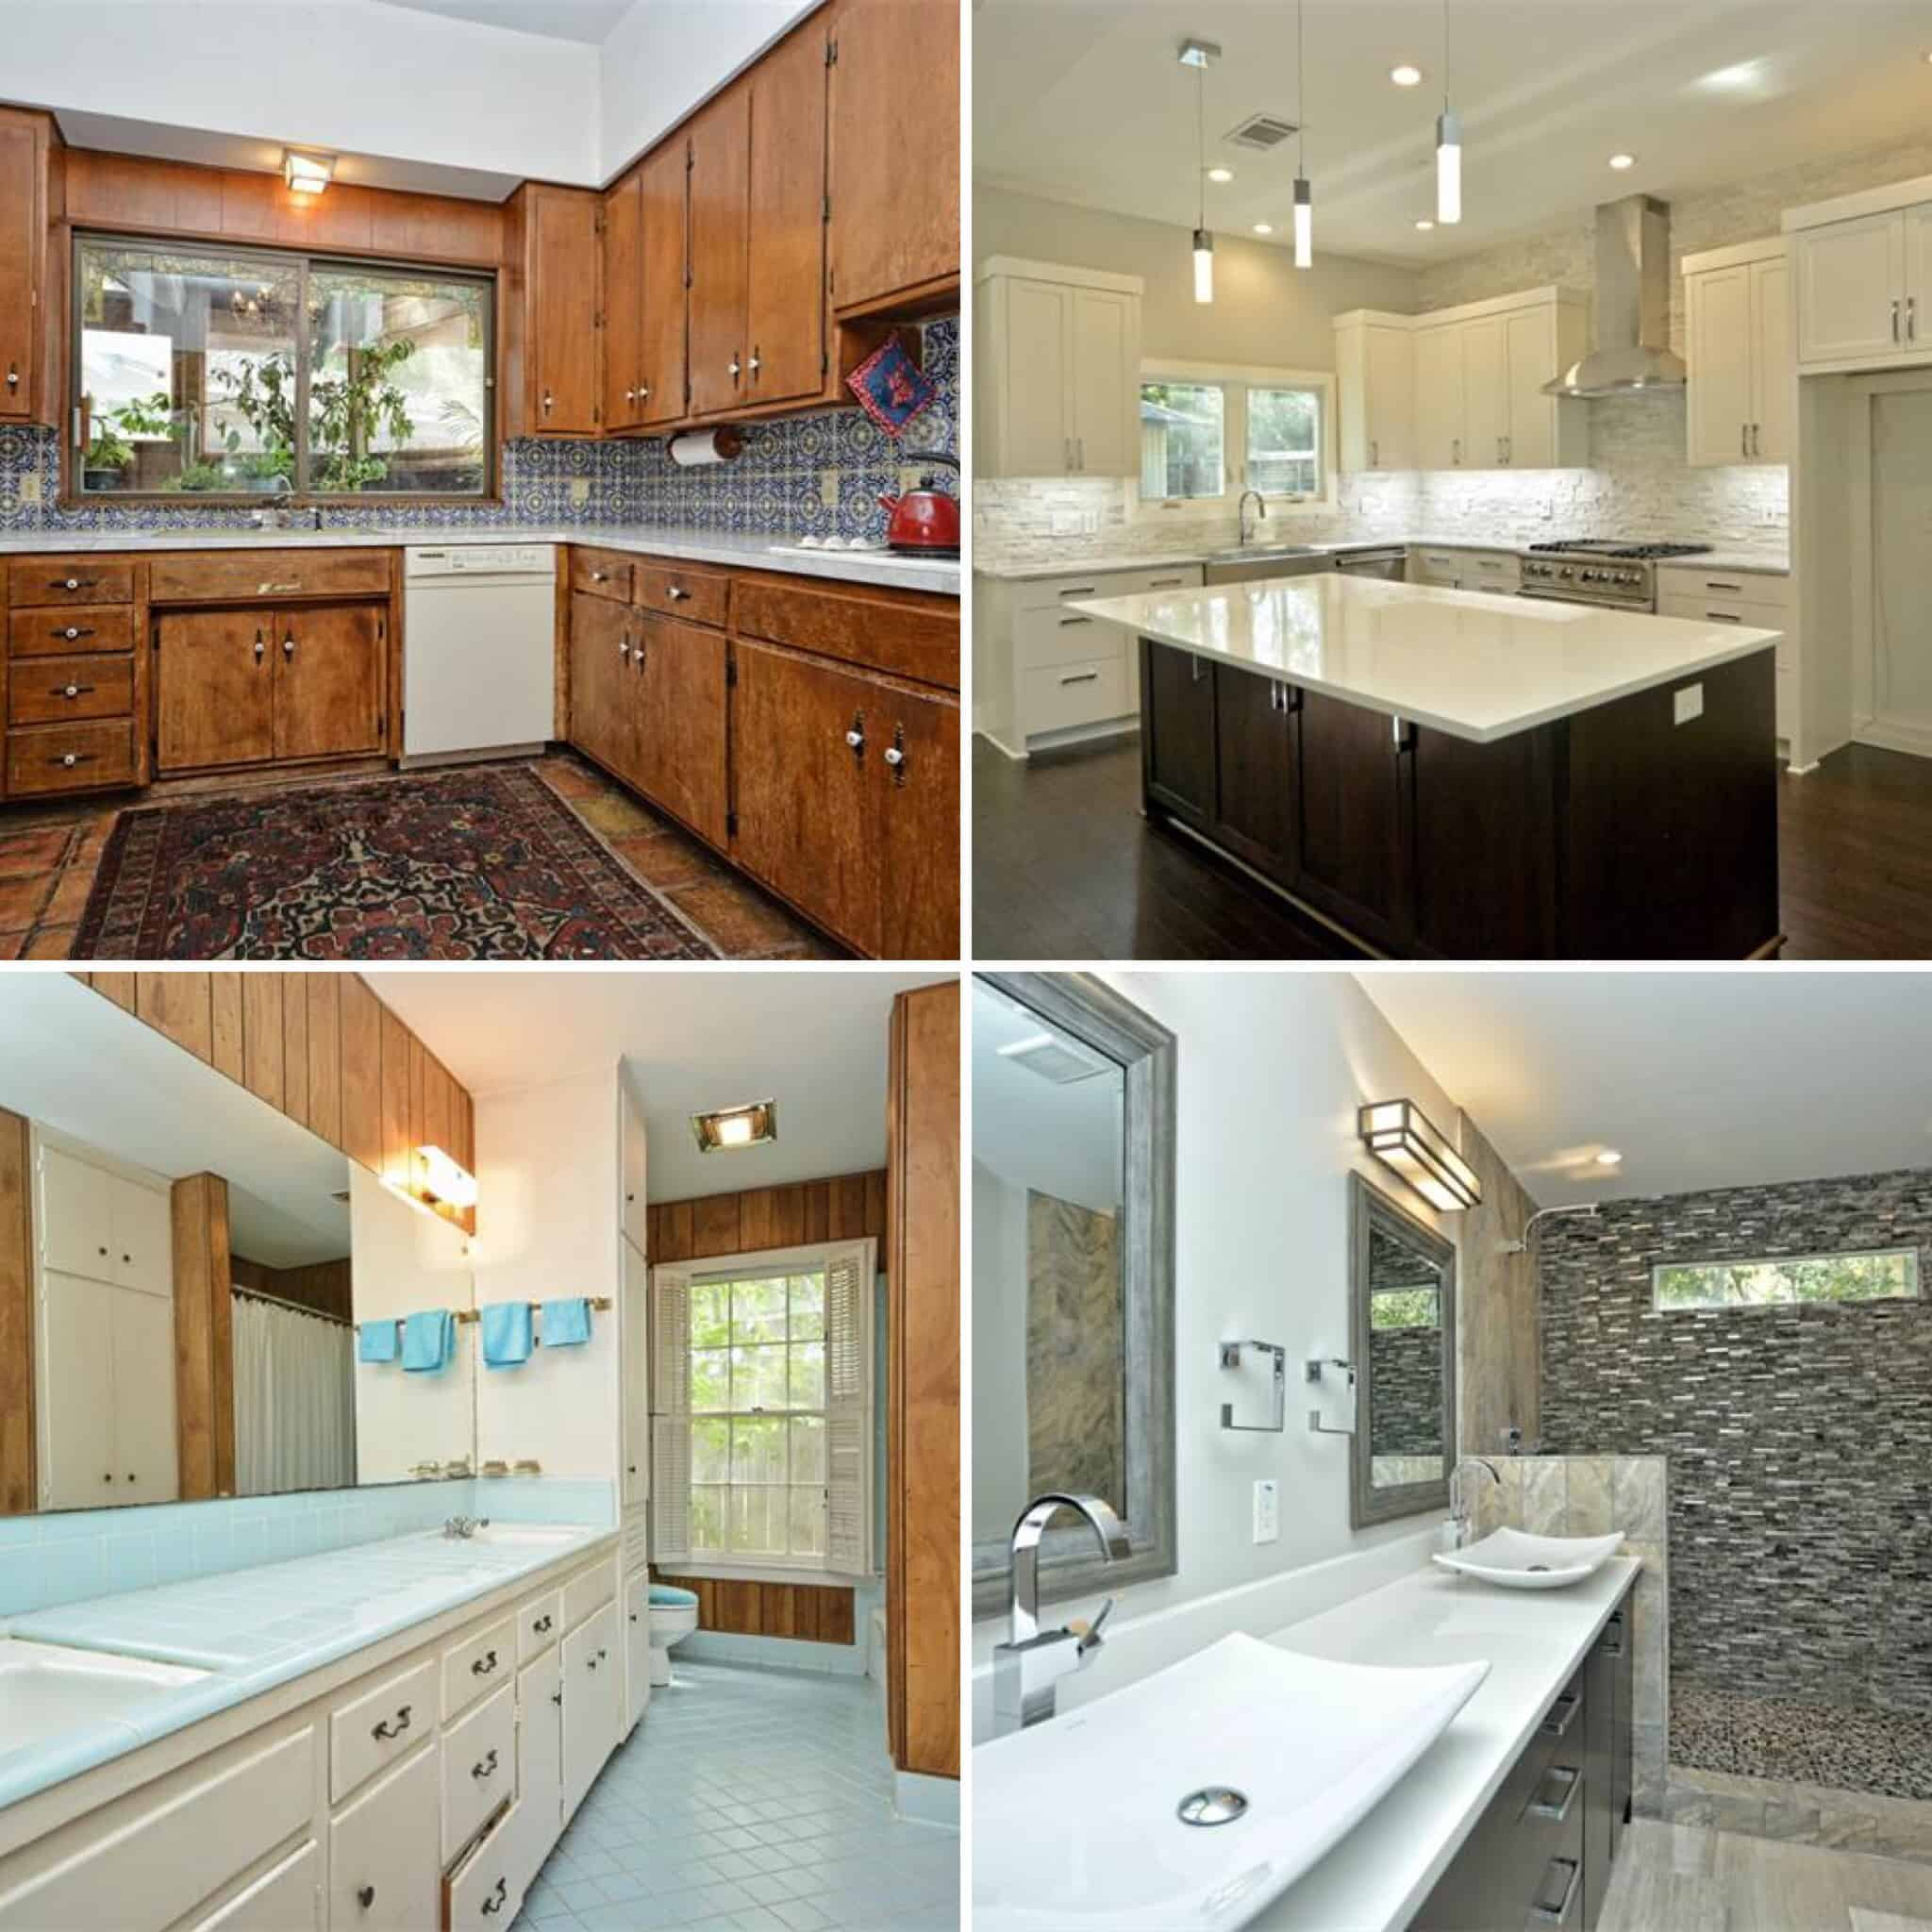 Dramatic Before & After Pictures of a Kitchen & Bath Remodel by Interior Designer Shay Millheiser of Swoon Talent